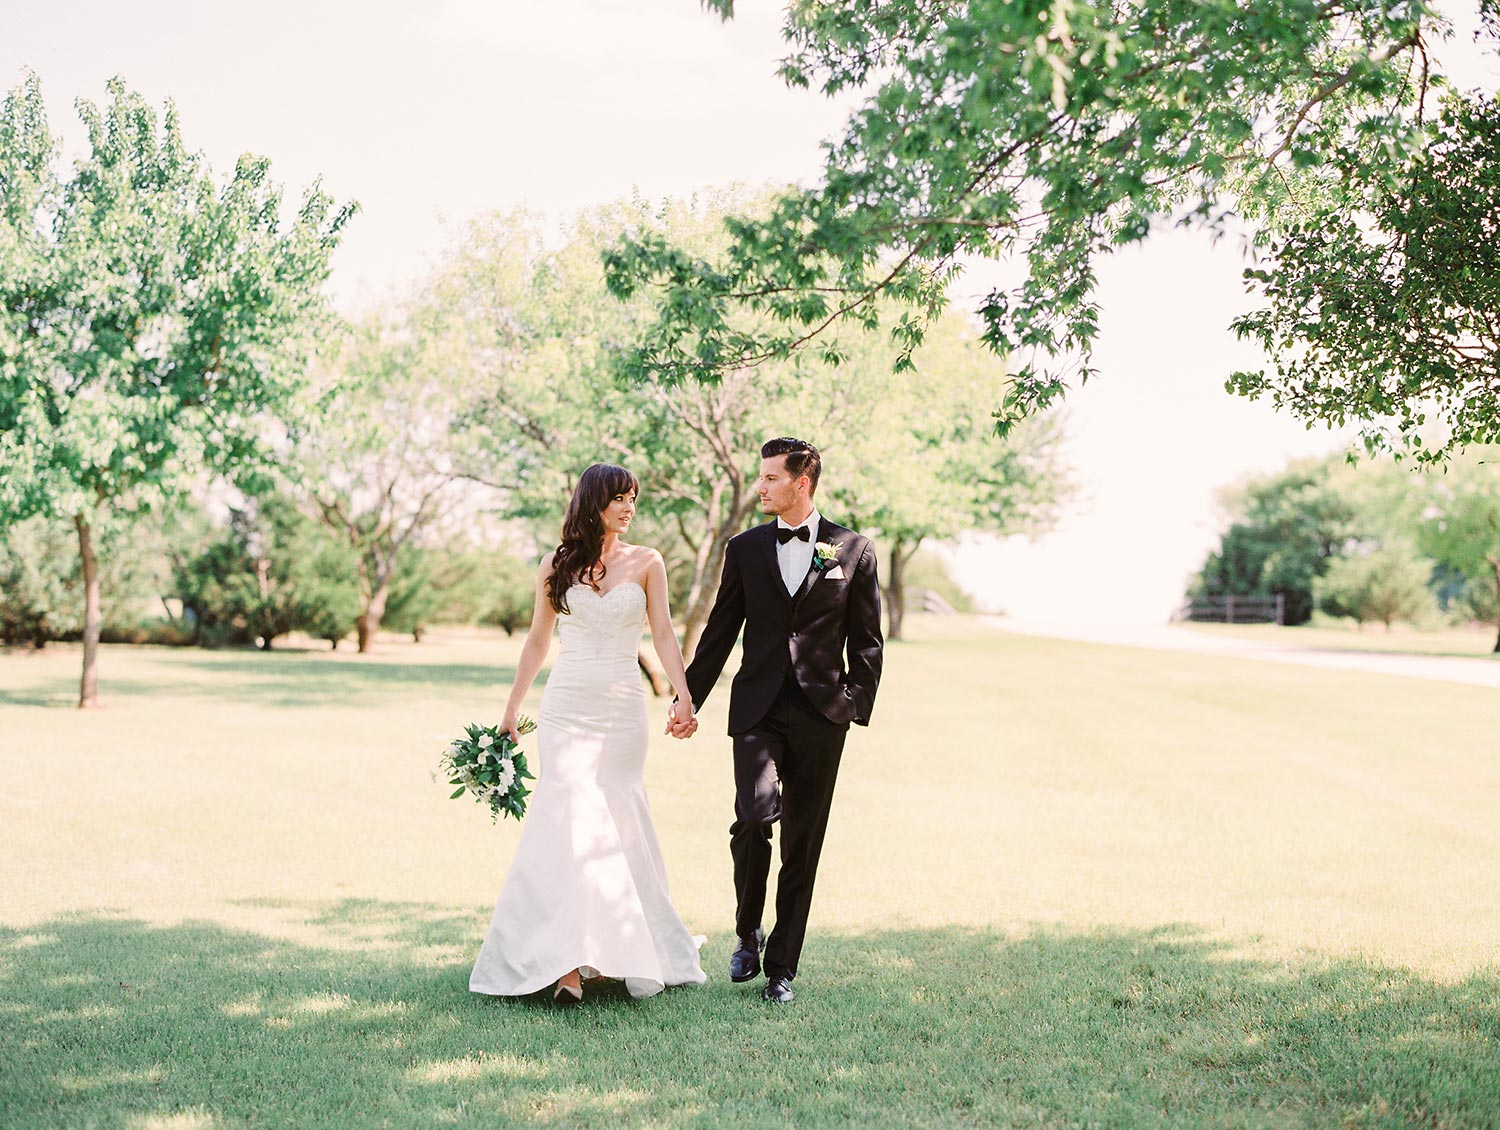 Bridea and groom walking outside and big open field in classic wedding attire at Miletone in Denton